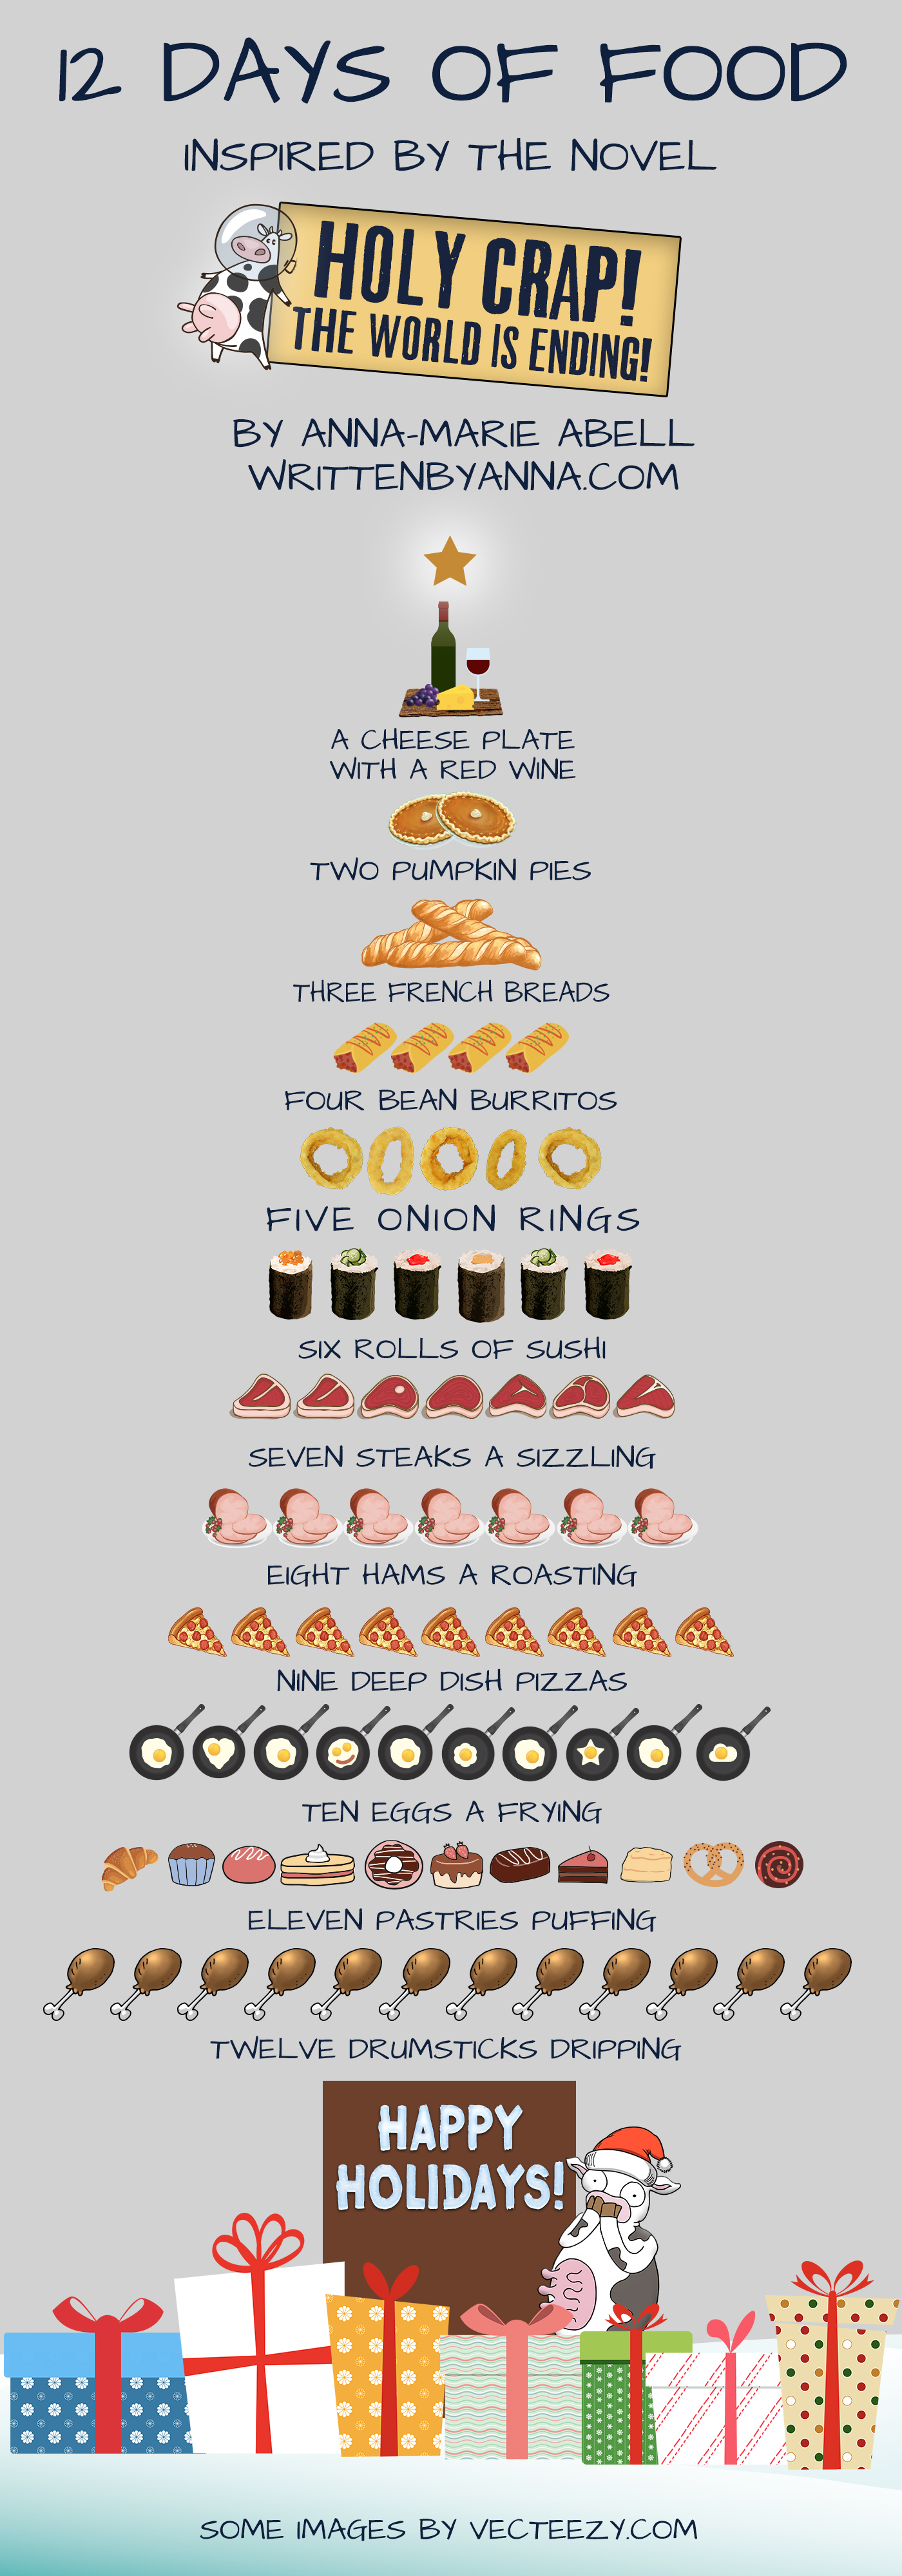 12 Days of Food